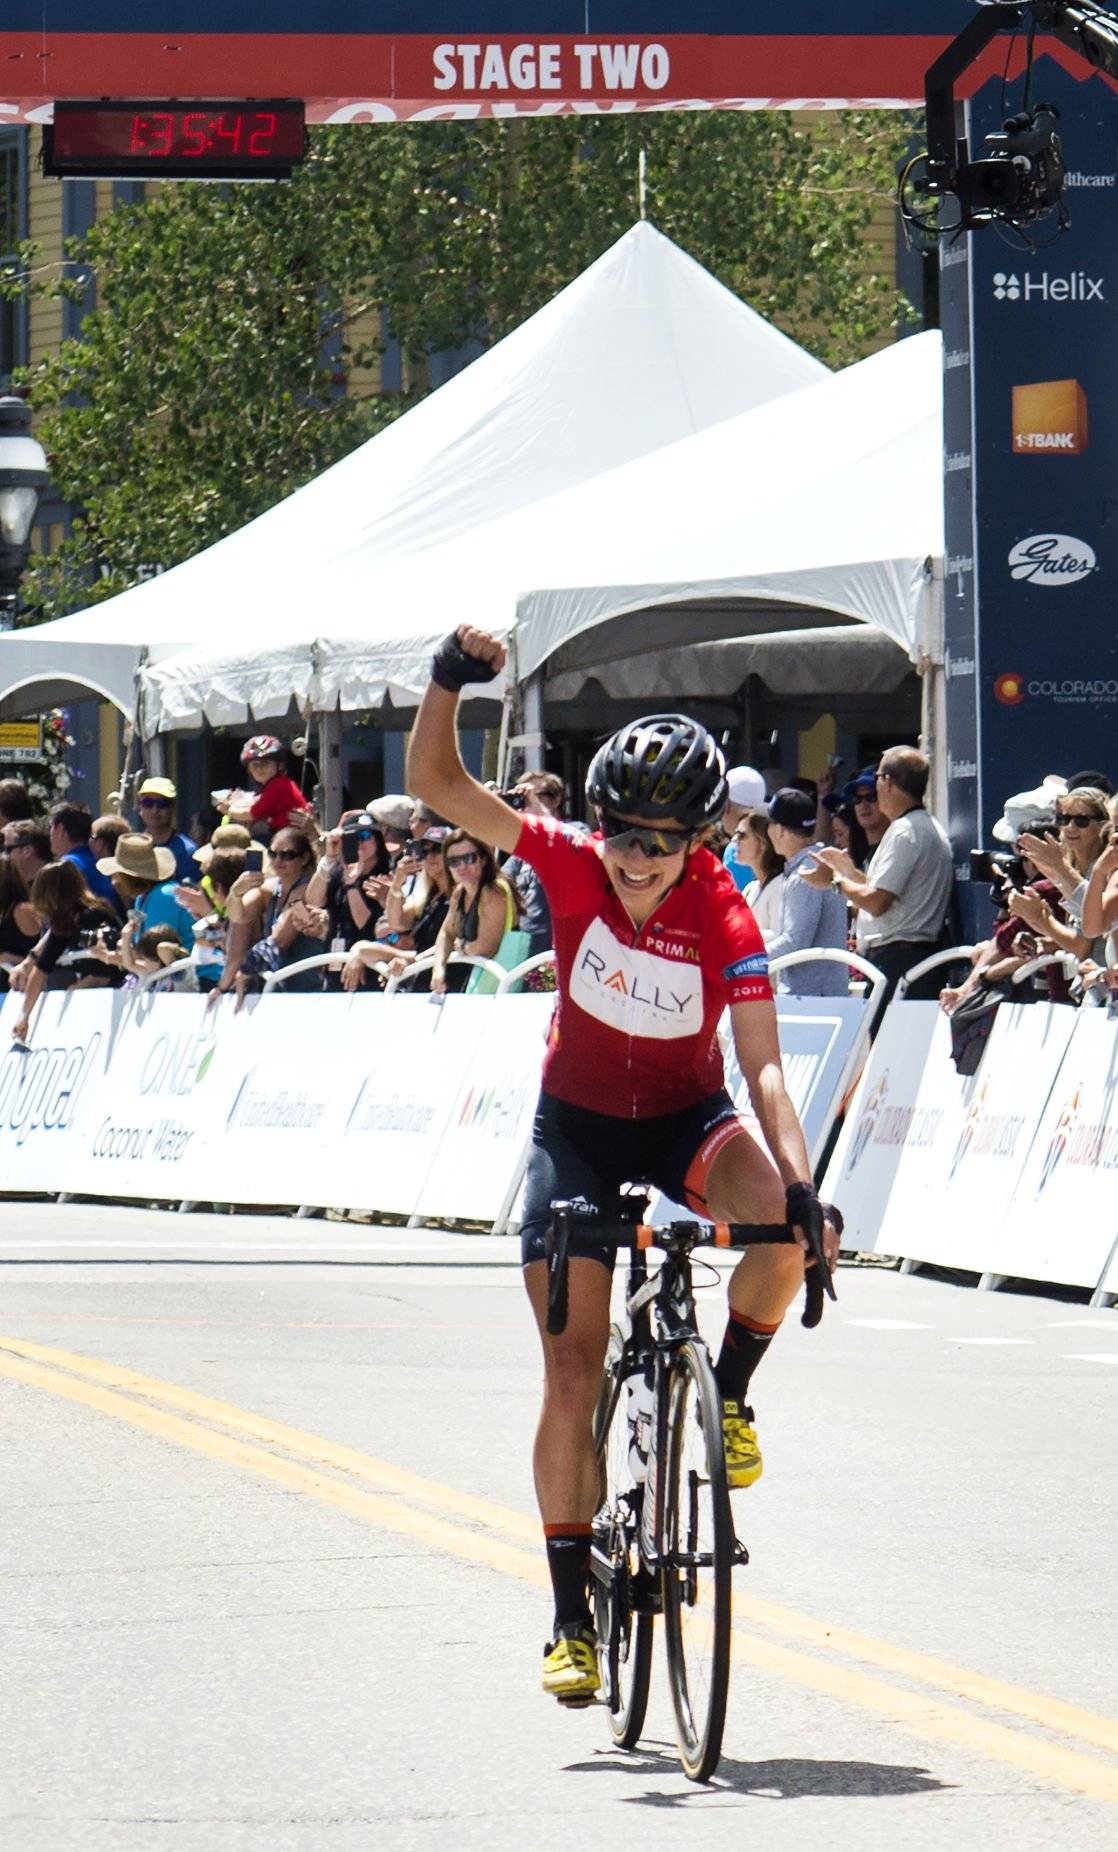 Sara Poidevin celebrates after crossing the finishline for the win Friday, Aug. 11, 2017, during Stage 2 of the women's race of the  Colorado Classic in Breckenridge, Colo.  (The Gazette, Christian Murdock)